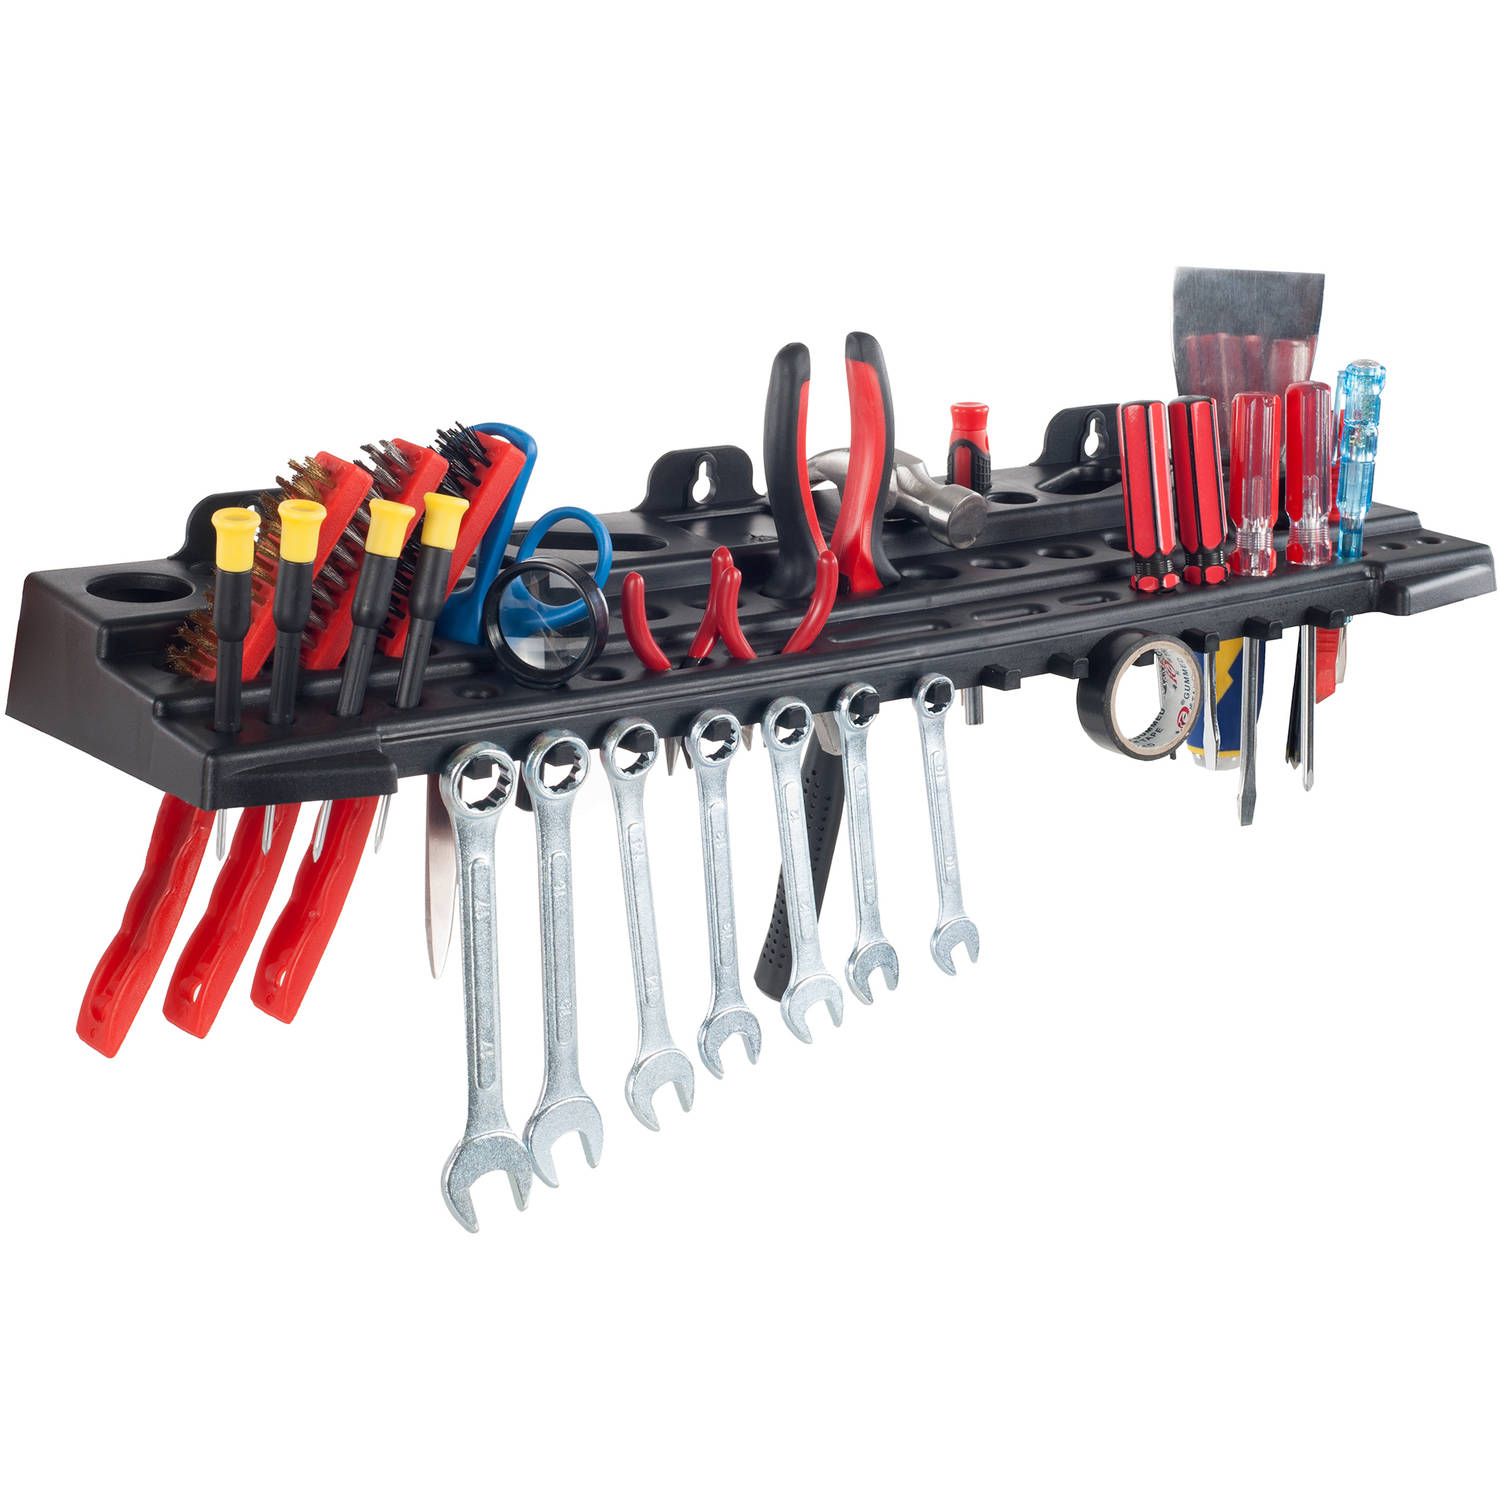 Multitool Organizer For Hand Tools, Automotive Tools, And Electric Tools, Wall  Mounted Tool